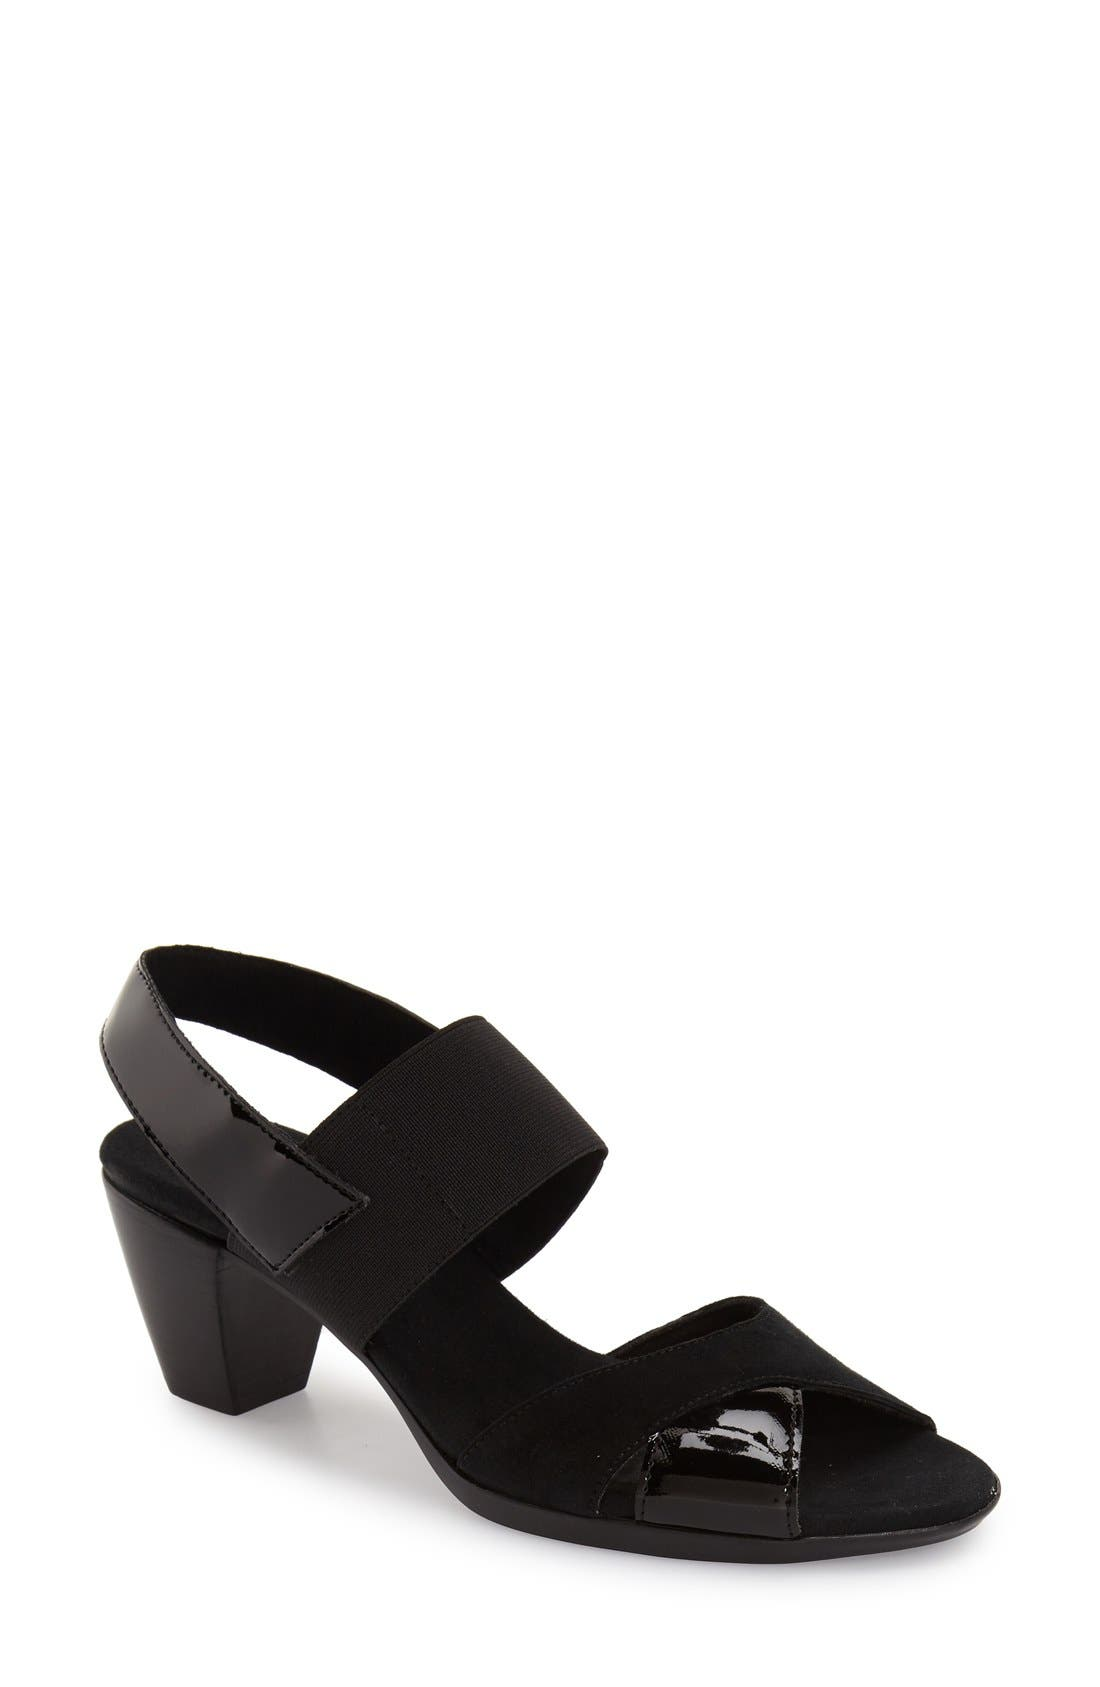 Main Image - Munro Darling Mixed Finish Slingback Sandal (Women)